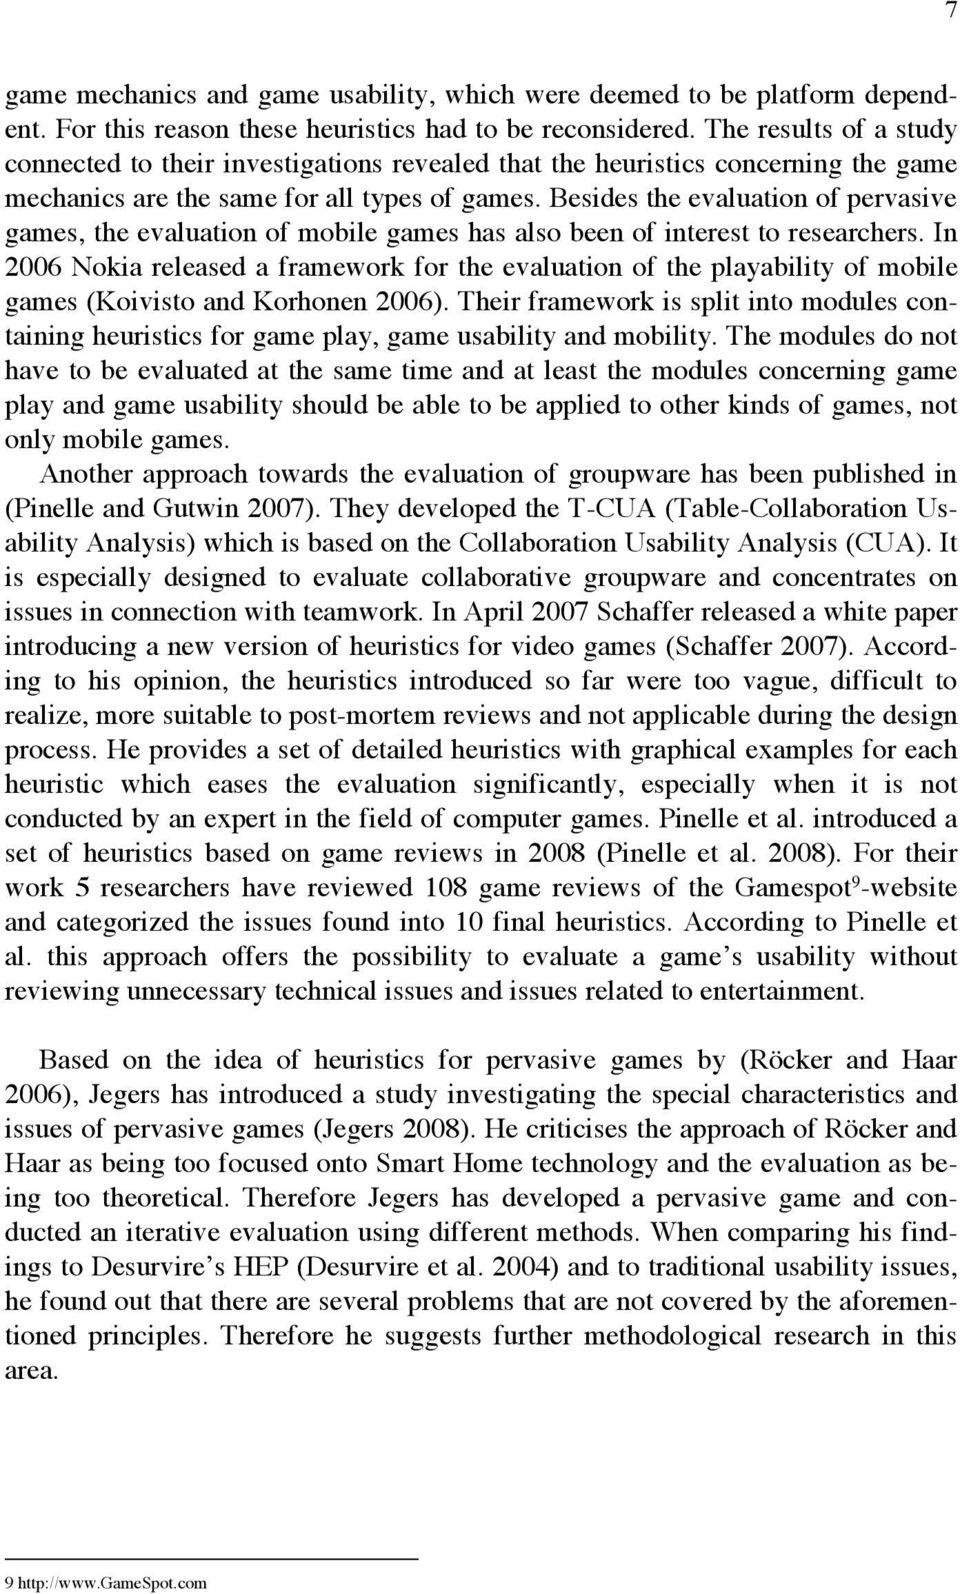 Besides the evaluation of pervasive games, the evaluation of mobile games has also been of interest to researchers.